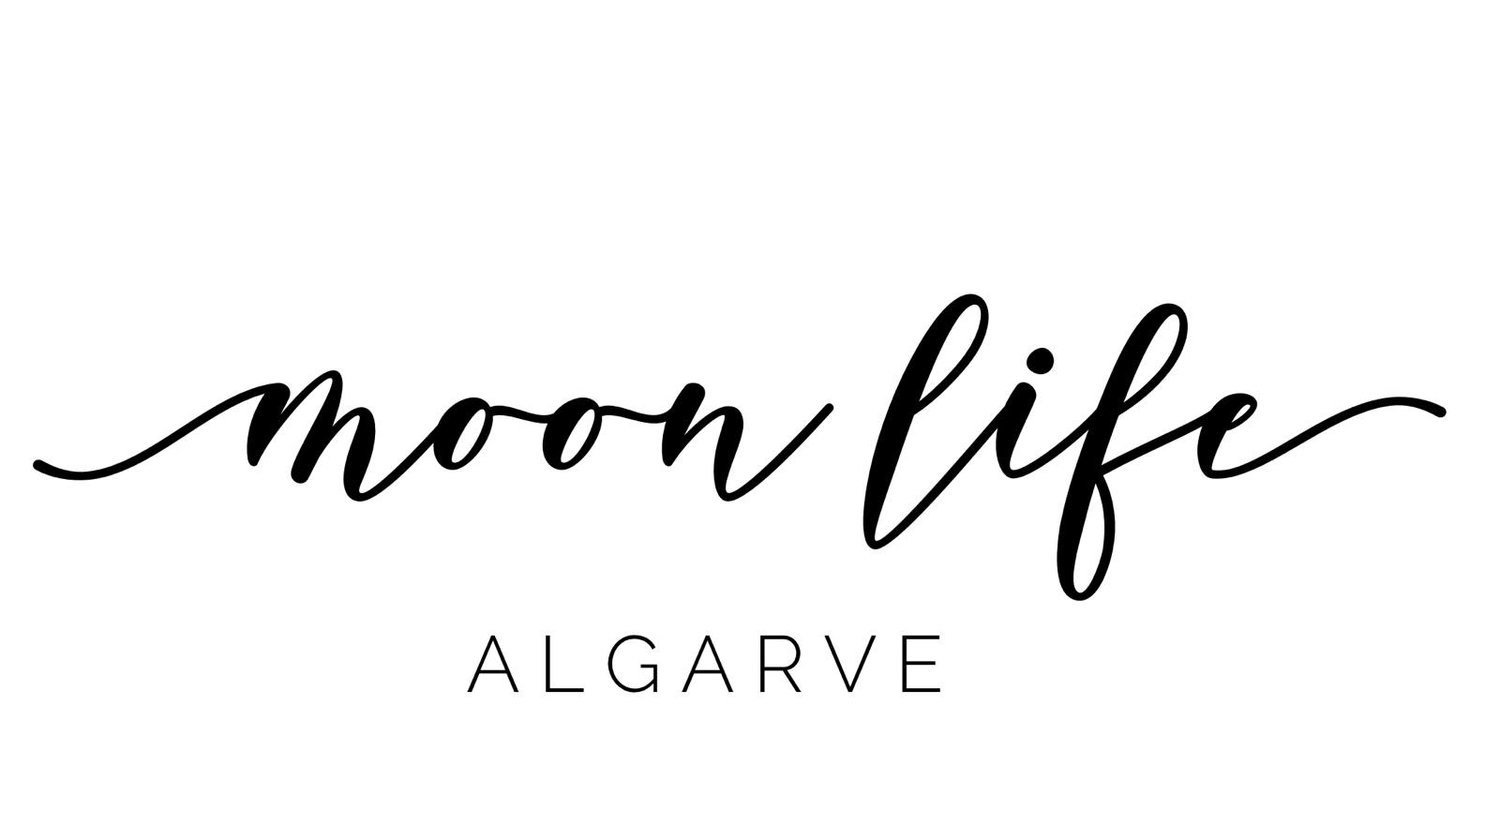 MOONLIFE - ALGARVE